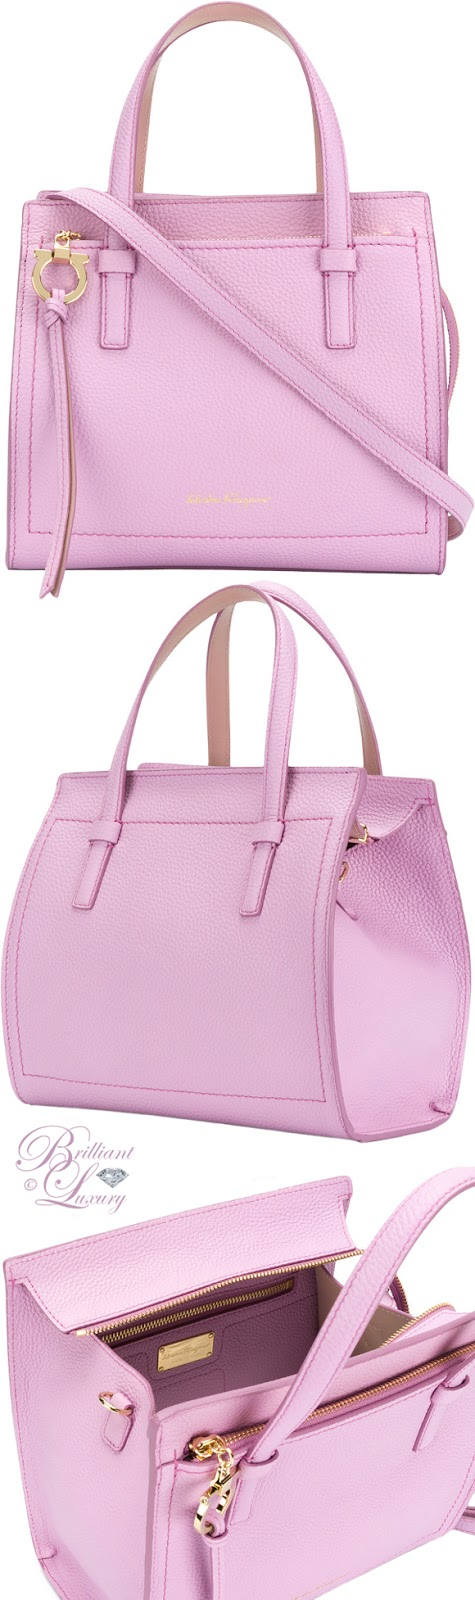 Brilliant Luxury ♦ Salvatore Ferragamo Gancio tote bag